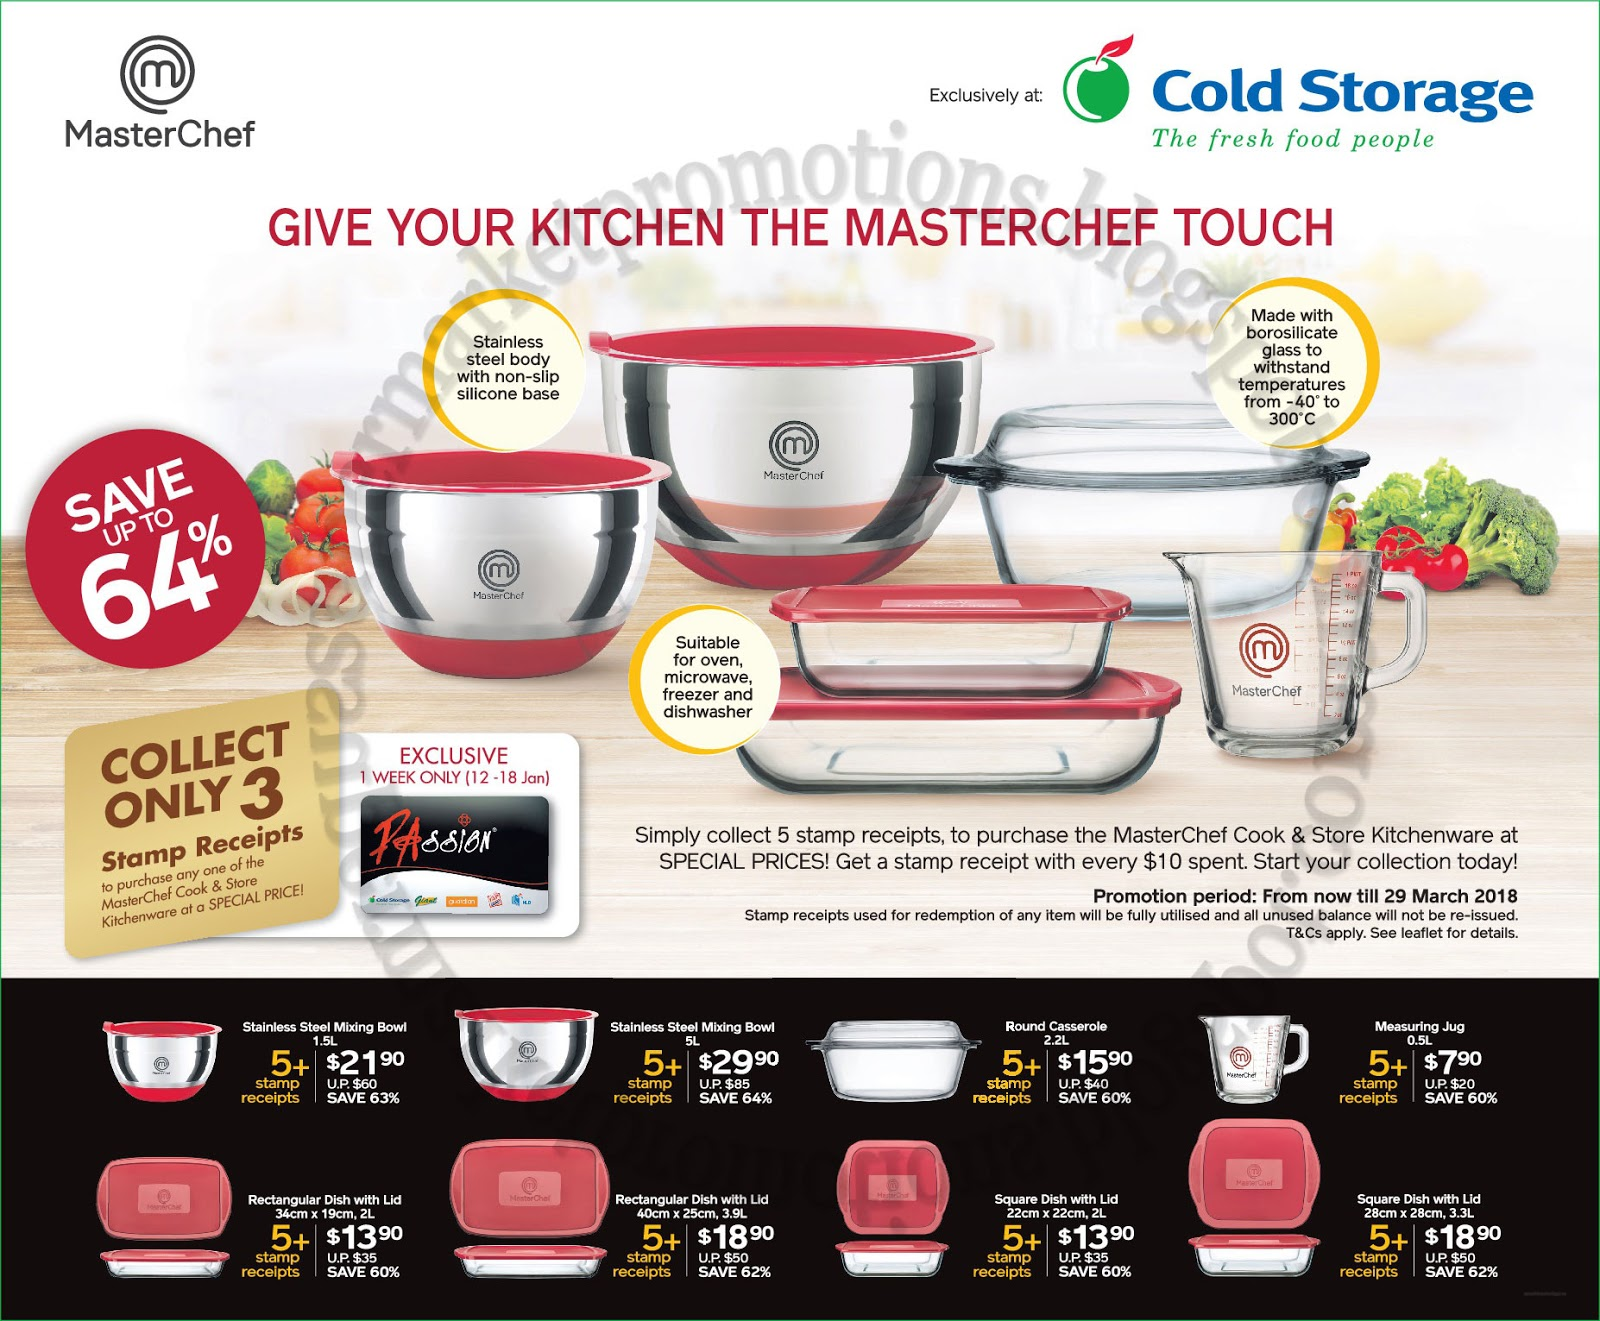 Collect only 3 St& receipts to purchase any one of the MasterChef Cook u0026 Store Kitchenware at a Special Price!  sc 1 st  Supermarket Promotions & Cold Storage Master Chef Cook u0026 Store Kitchenware Promotion 12 ...